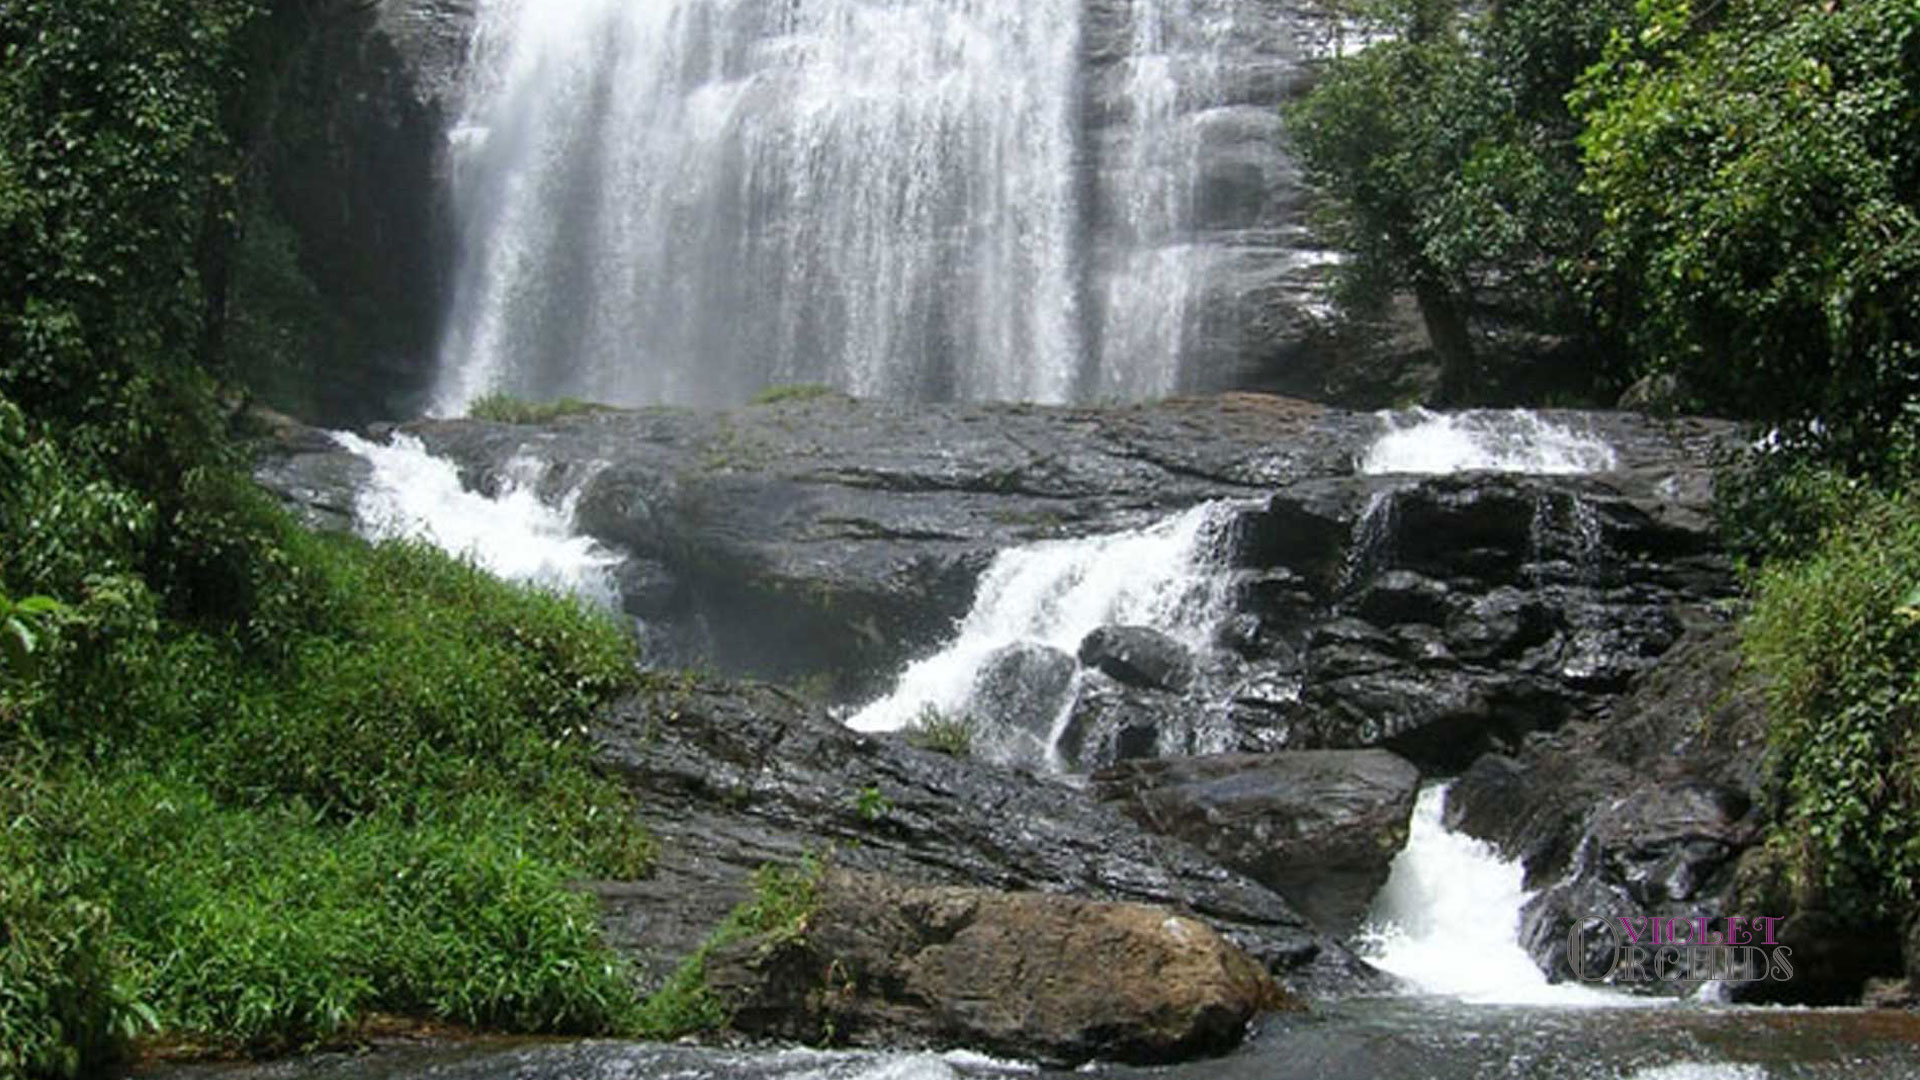 Chelavara falls coorg photos images and wallpapers for 3d wallpaper for home in bangalore